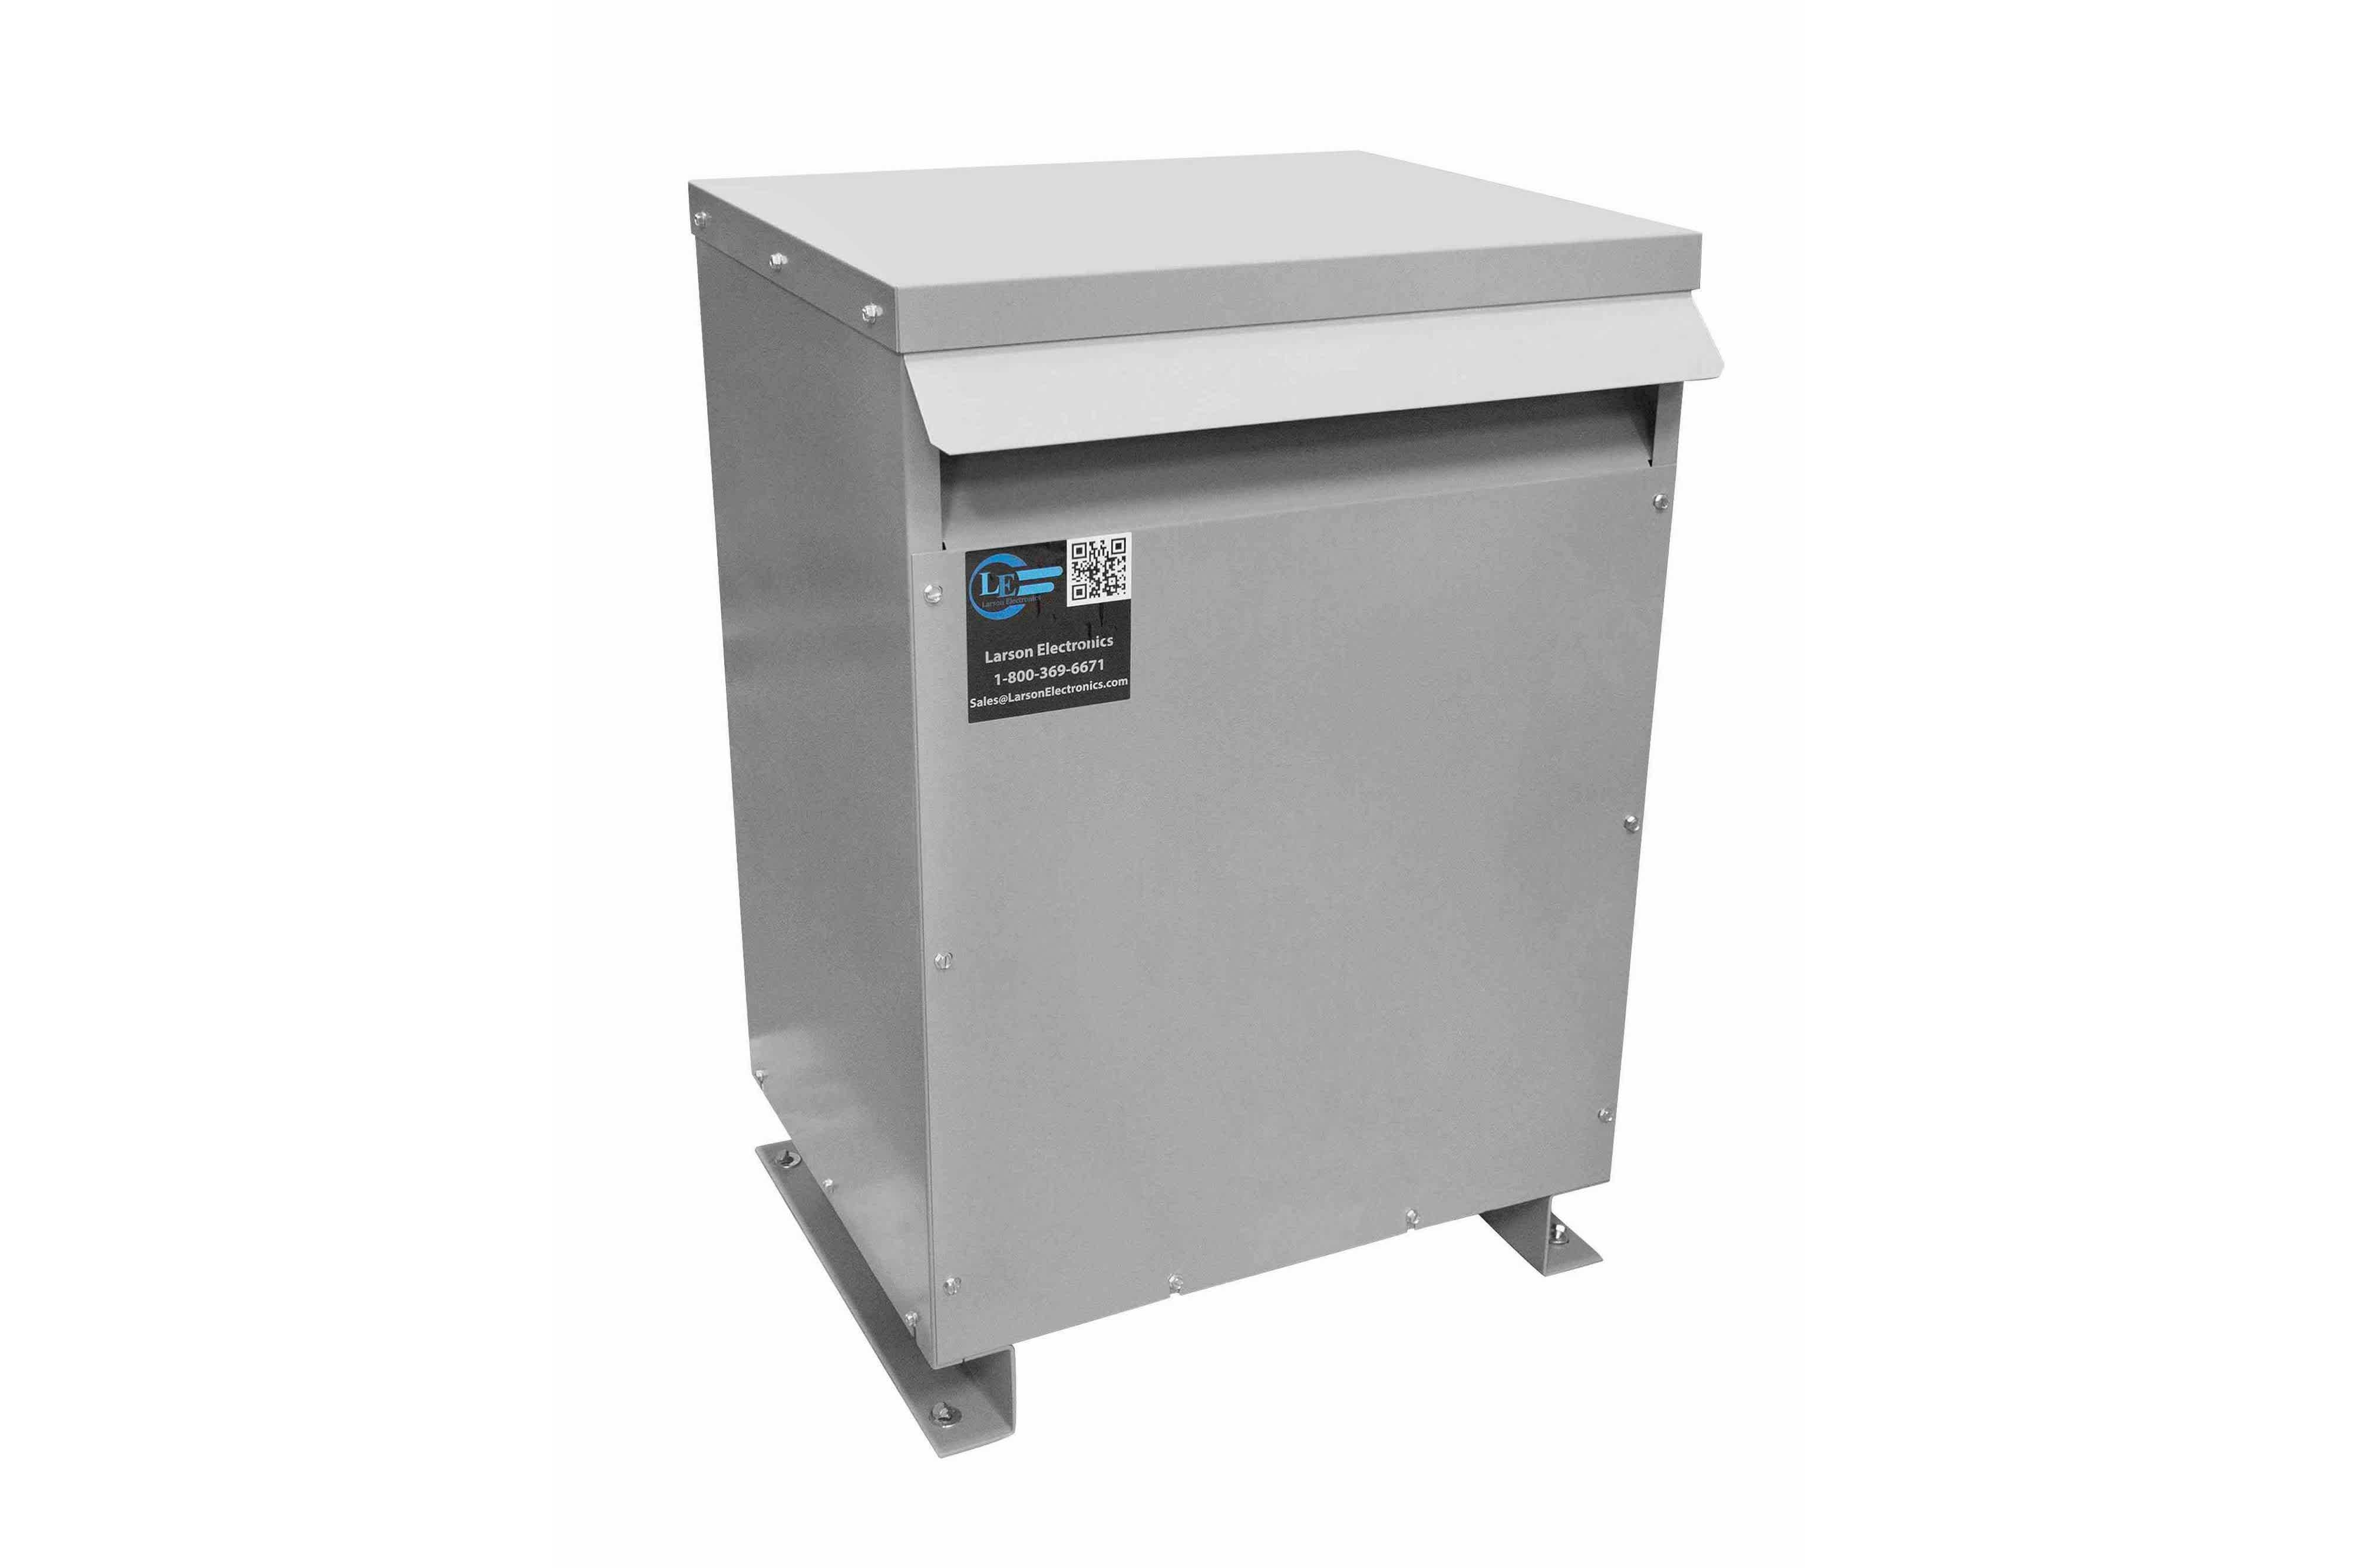 55 kVA 3PH Isolation Transformer, 380V Wye Primary, 208V Delta Secondary, N3R, Ventilated, 60 Hz